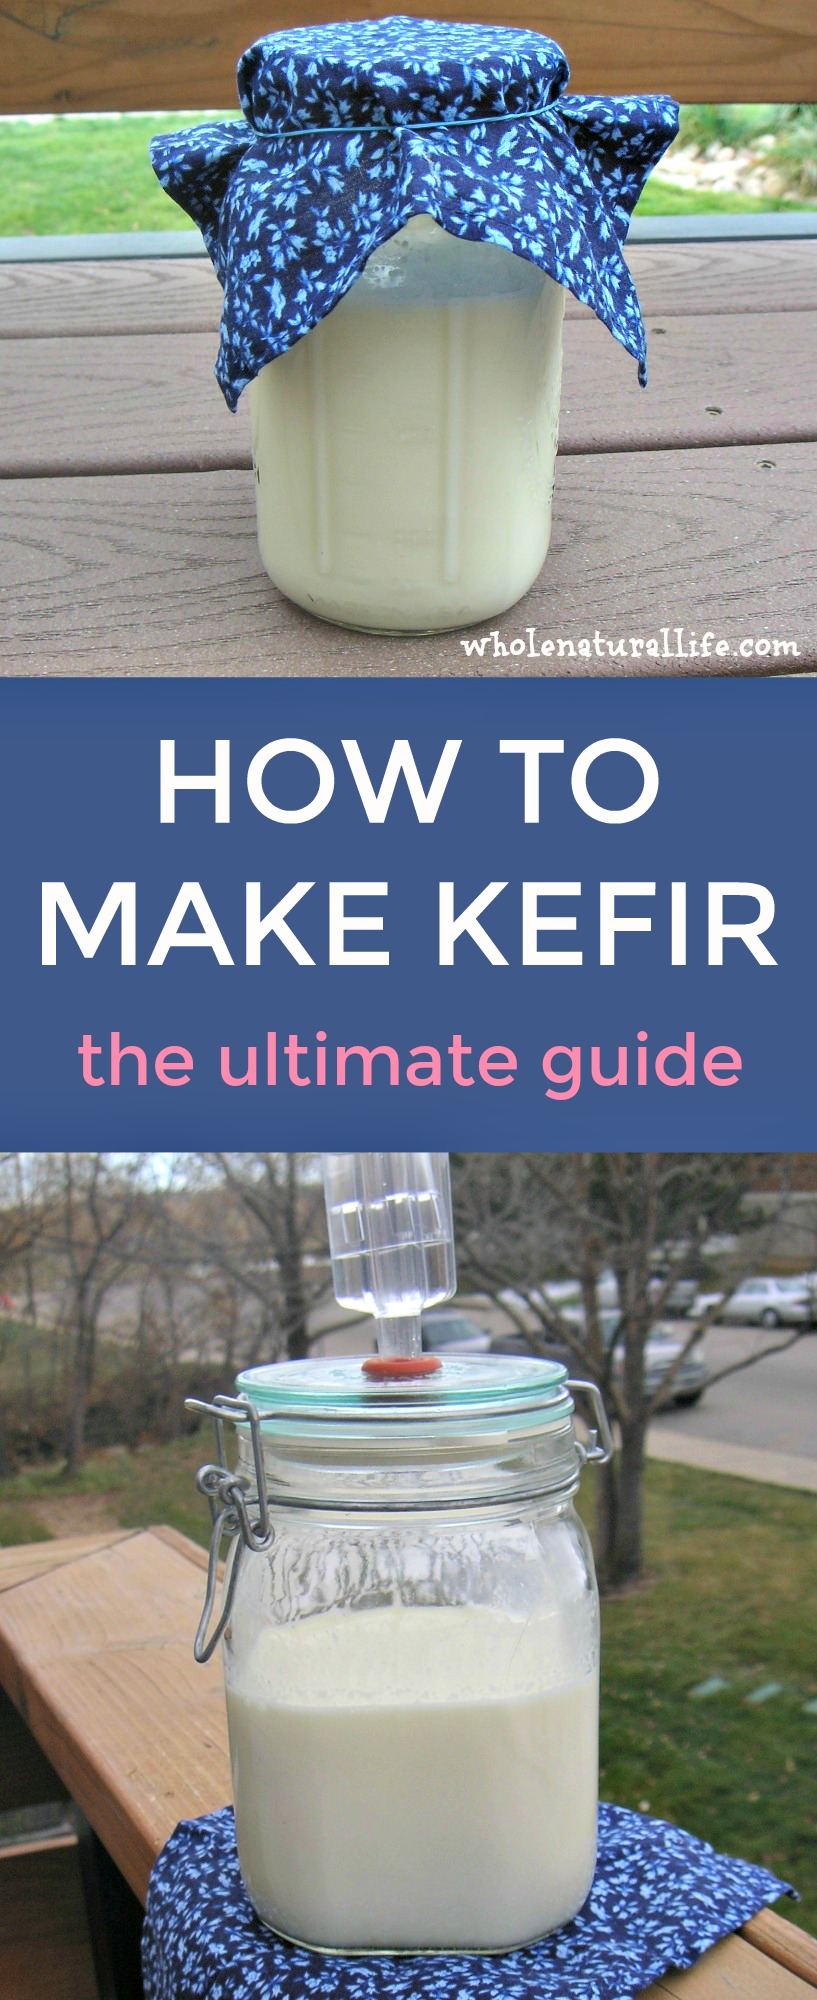 The Ultimate Guide to How to Make Kefir at Home  Whole Natural Life